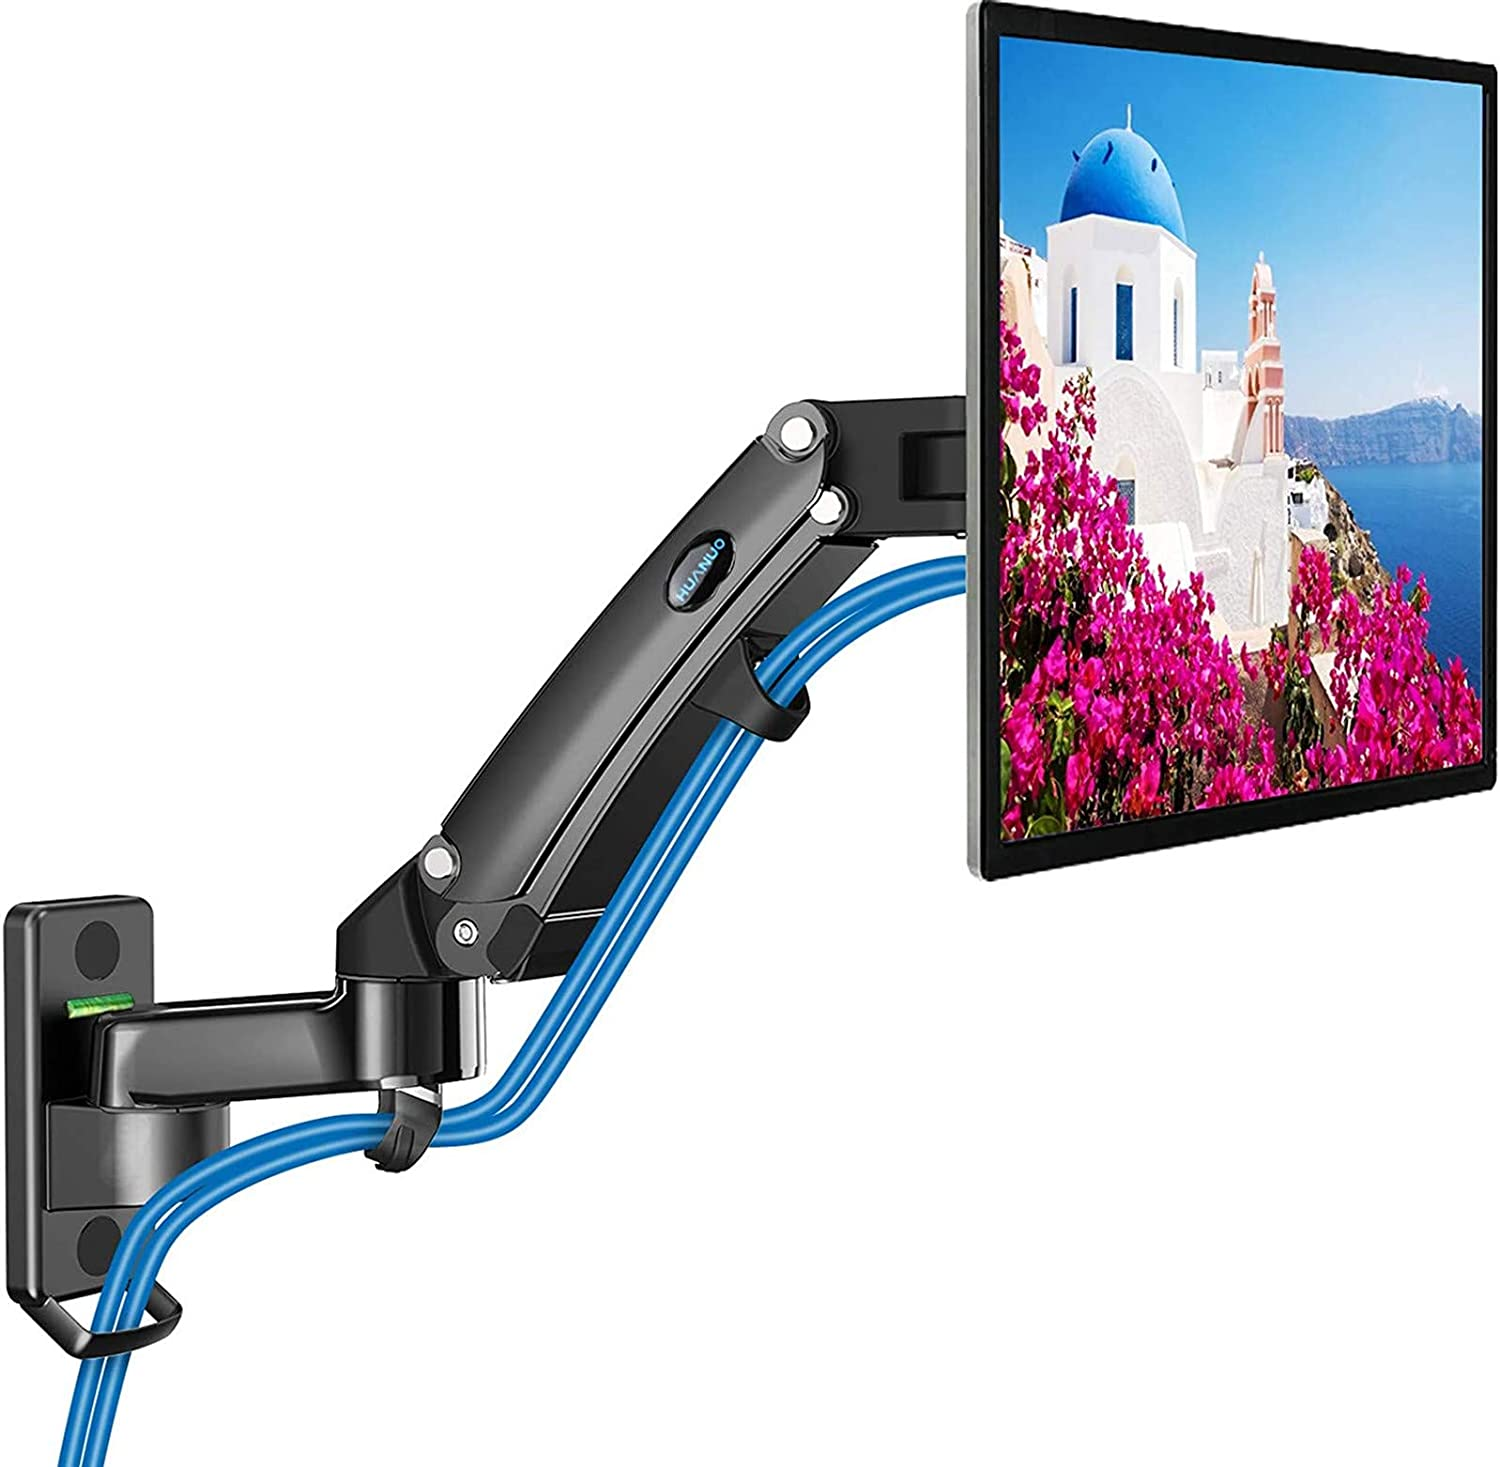 HUANUO Monitor Wall Mount - Gas Spring Arm Wall Mount Stand for 24 to 35 Inch Screen, Full Motion Adjustable Vesa Bracket, Hold 6.6 to 26.4lbs, Vesa 75 100 200